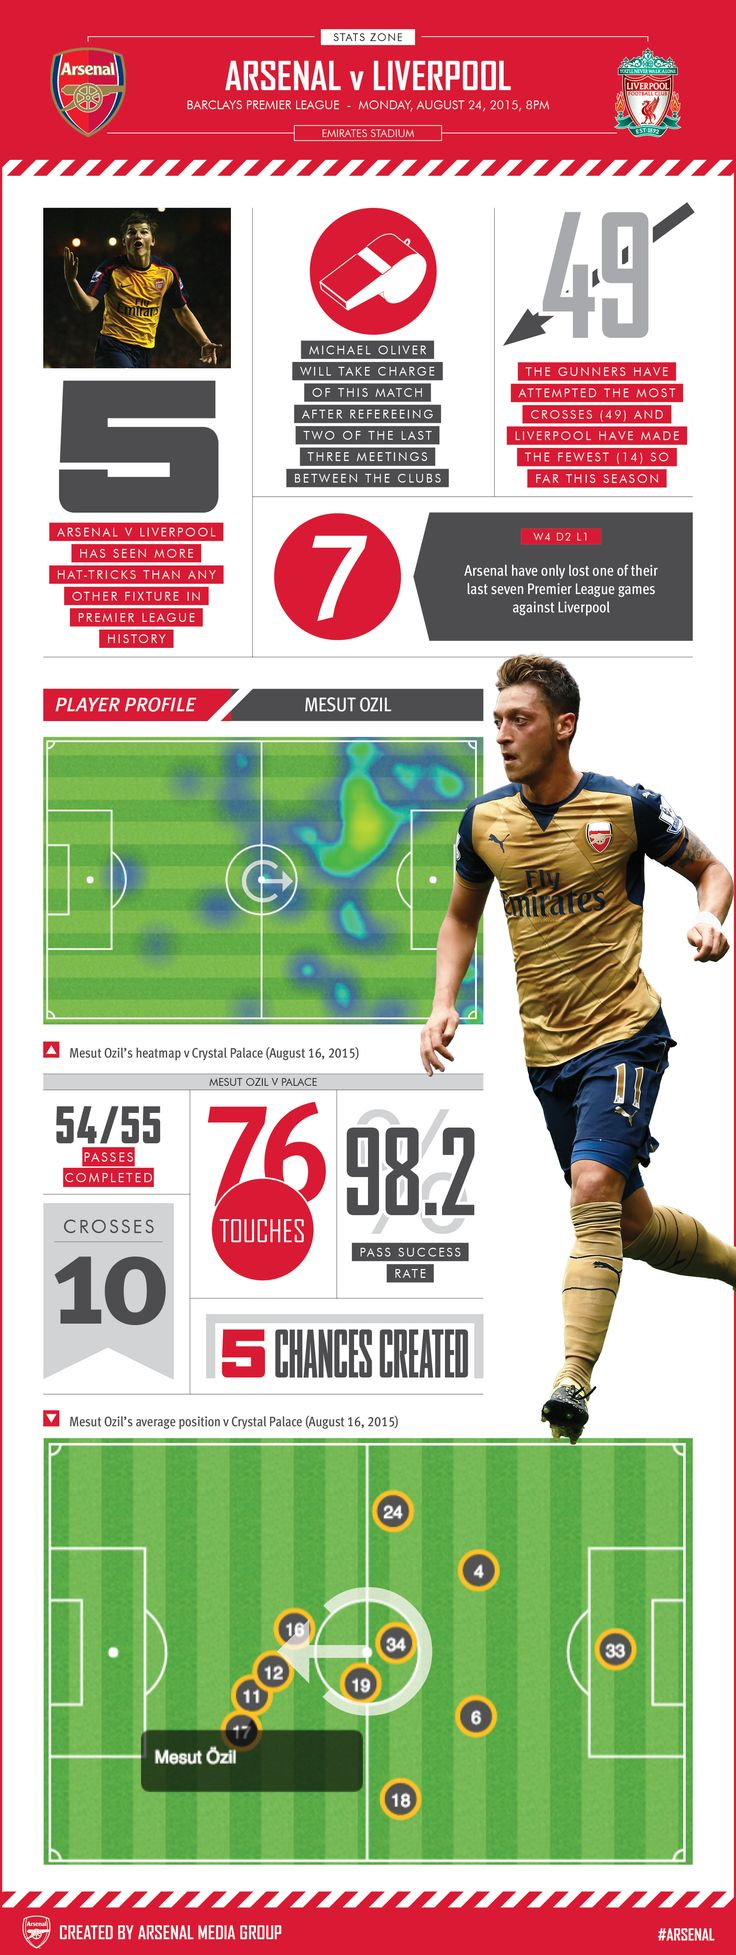 Our pre-match graphic has match facts and a closer look at Mesut Ozil's performance against Crystal Palace.